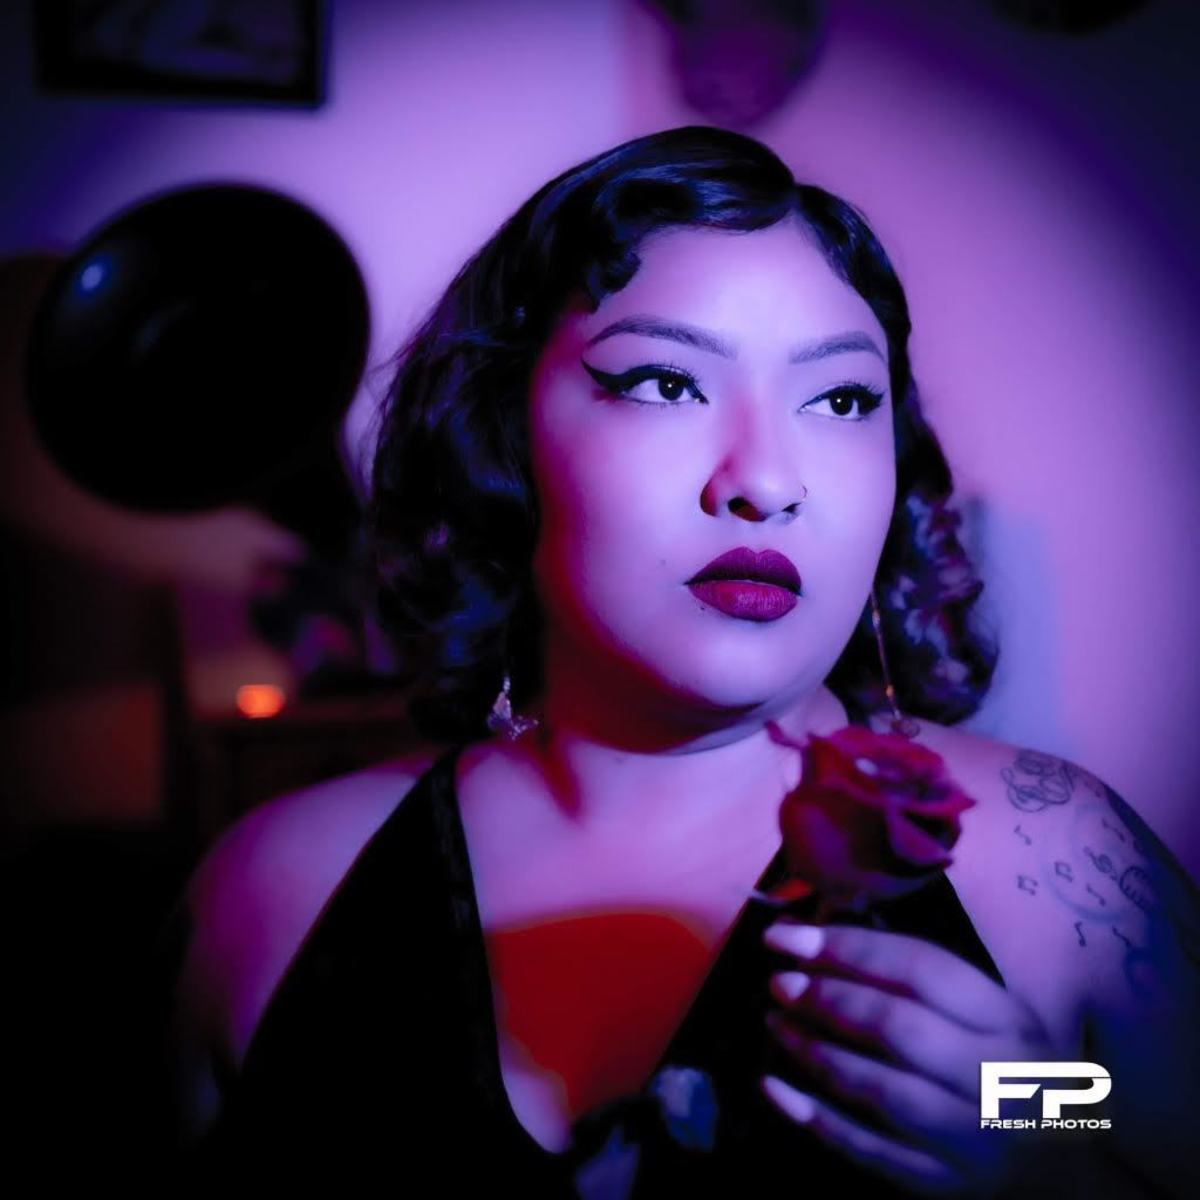 Elvia Cadena is the Latina R&B singer that has many music industry insiders taking notice of her songwriting skills and unique vocals.